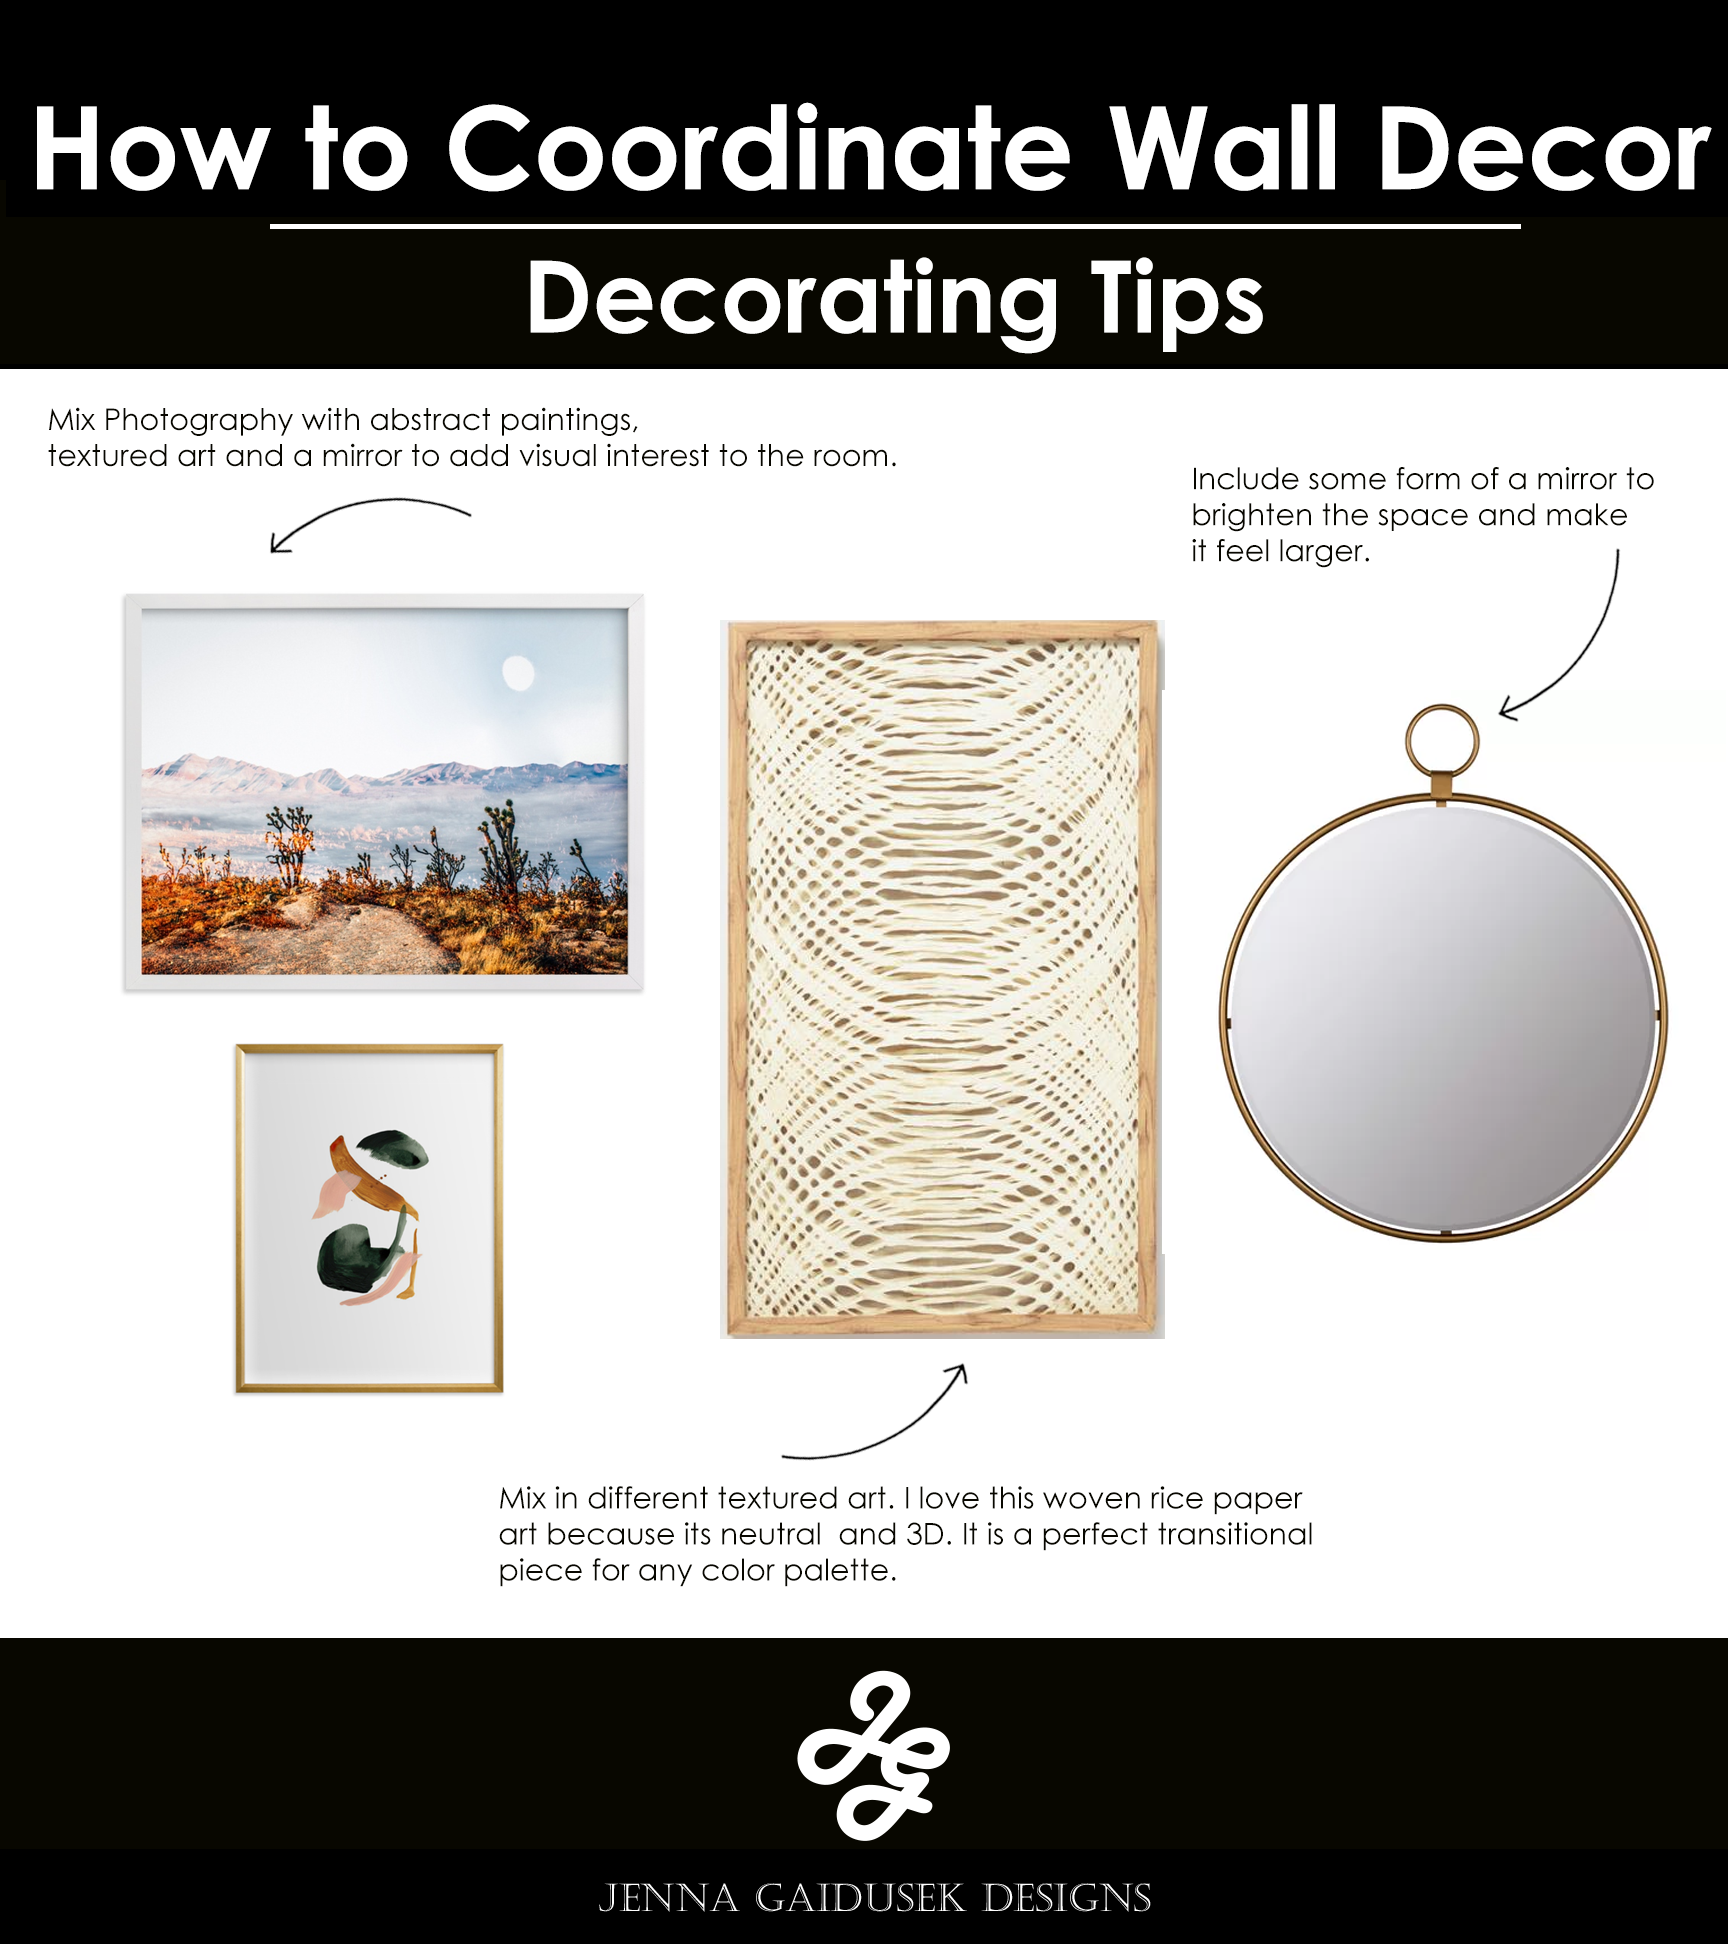 Use one main piece that embodies your color palette that you can pull pops of color from in your other wall decor and room accent colors.  In this example I used the Desert photography for the main source of color and pulled the gold/brass, green and soft blush color in the abstract art. The gold frame adds a border around the centralized design and mixes up the framing in the room to contrast the white border around the photography art.   Mix in different textured art. I love this woven rice paper art because its neutral and 3D. It is a perfect transitional piece for any color palette.